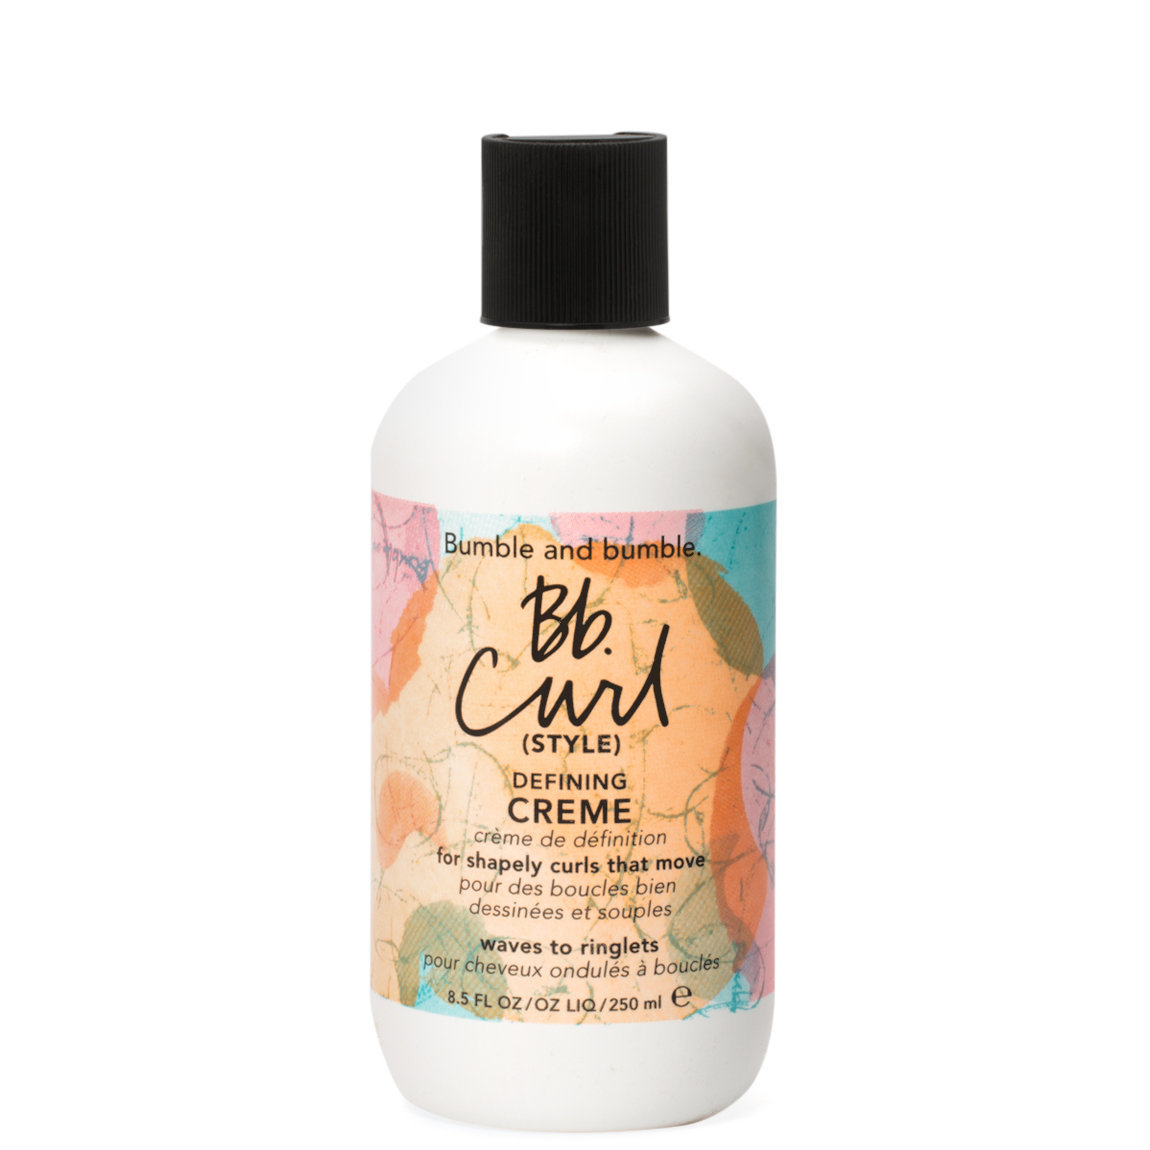 Bumble and bumble. Bb.Curl Defining Creme Bb.Curl Defining Crème product smear.